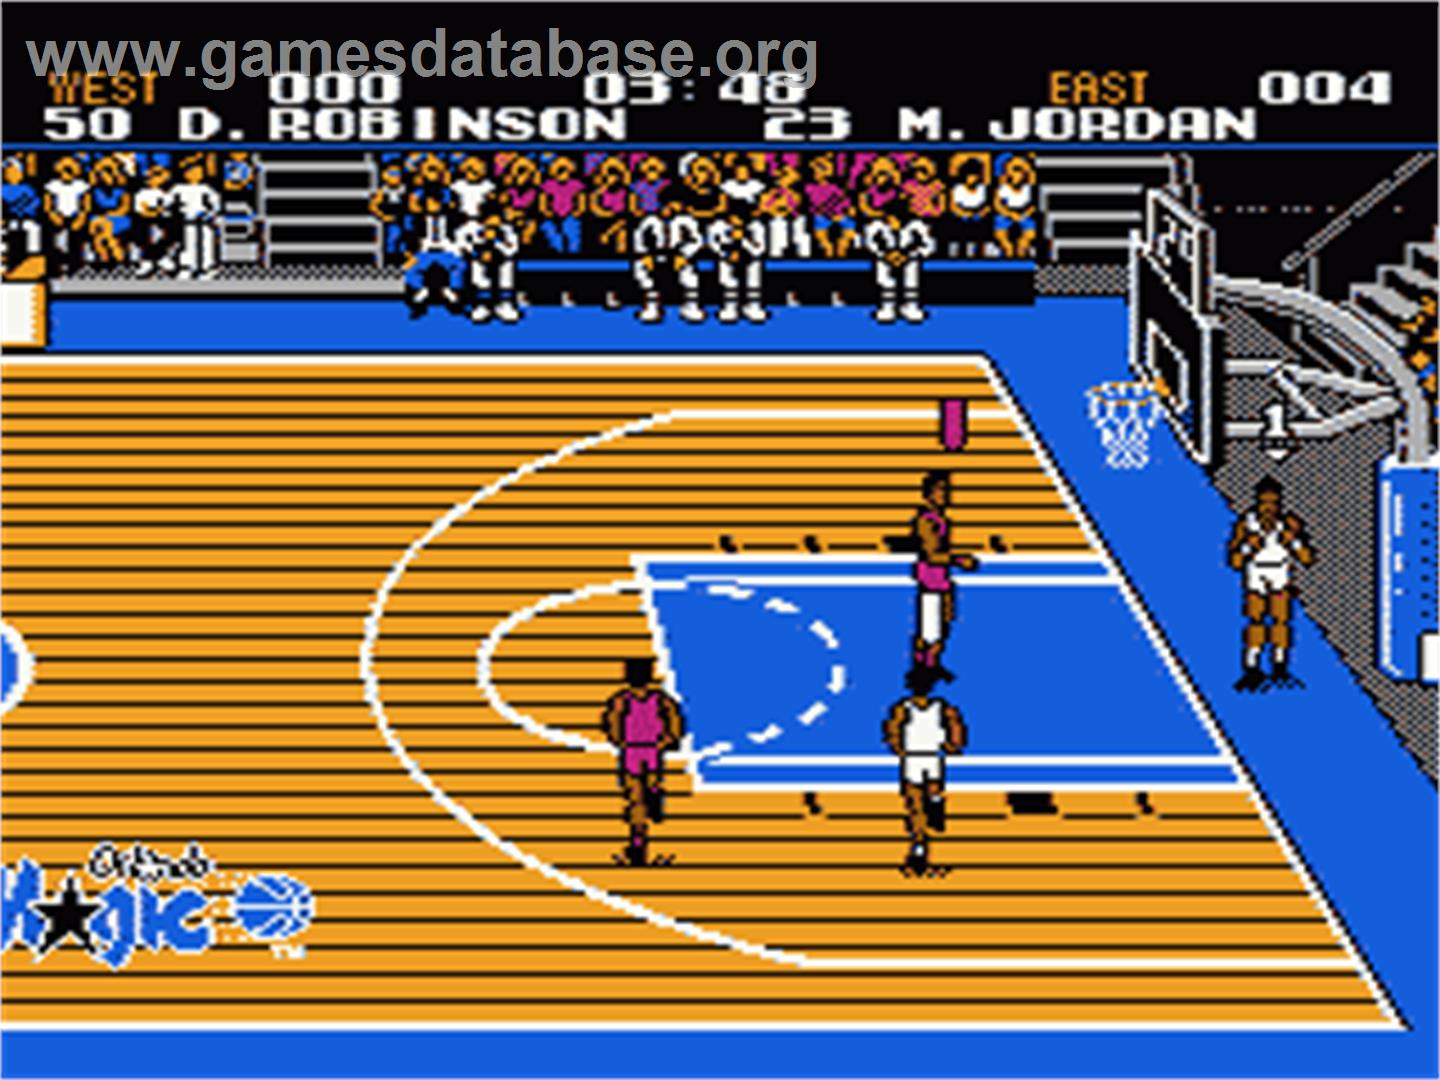 http://www.gamesdatabase.org//Media/SYSTEM/Nintendo_NES/Snap/big/Tecmo_NBA_Basketball_-_1992_-_Tecmo,_Ltd..jpg